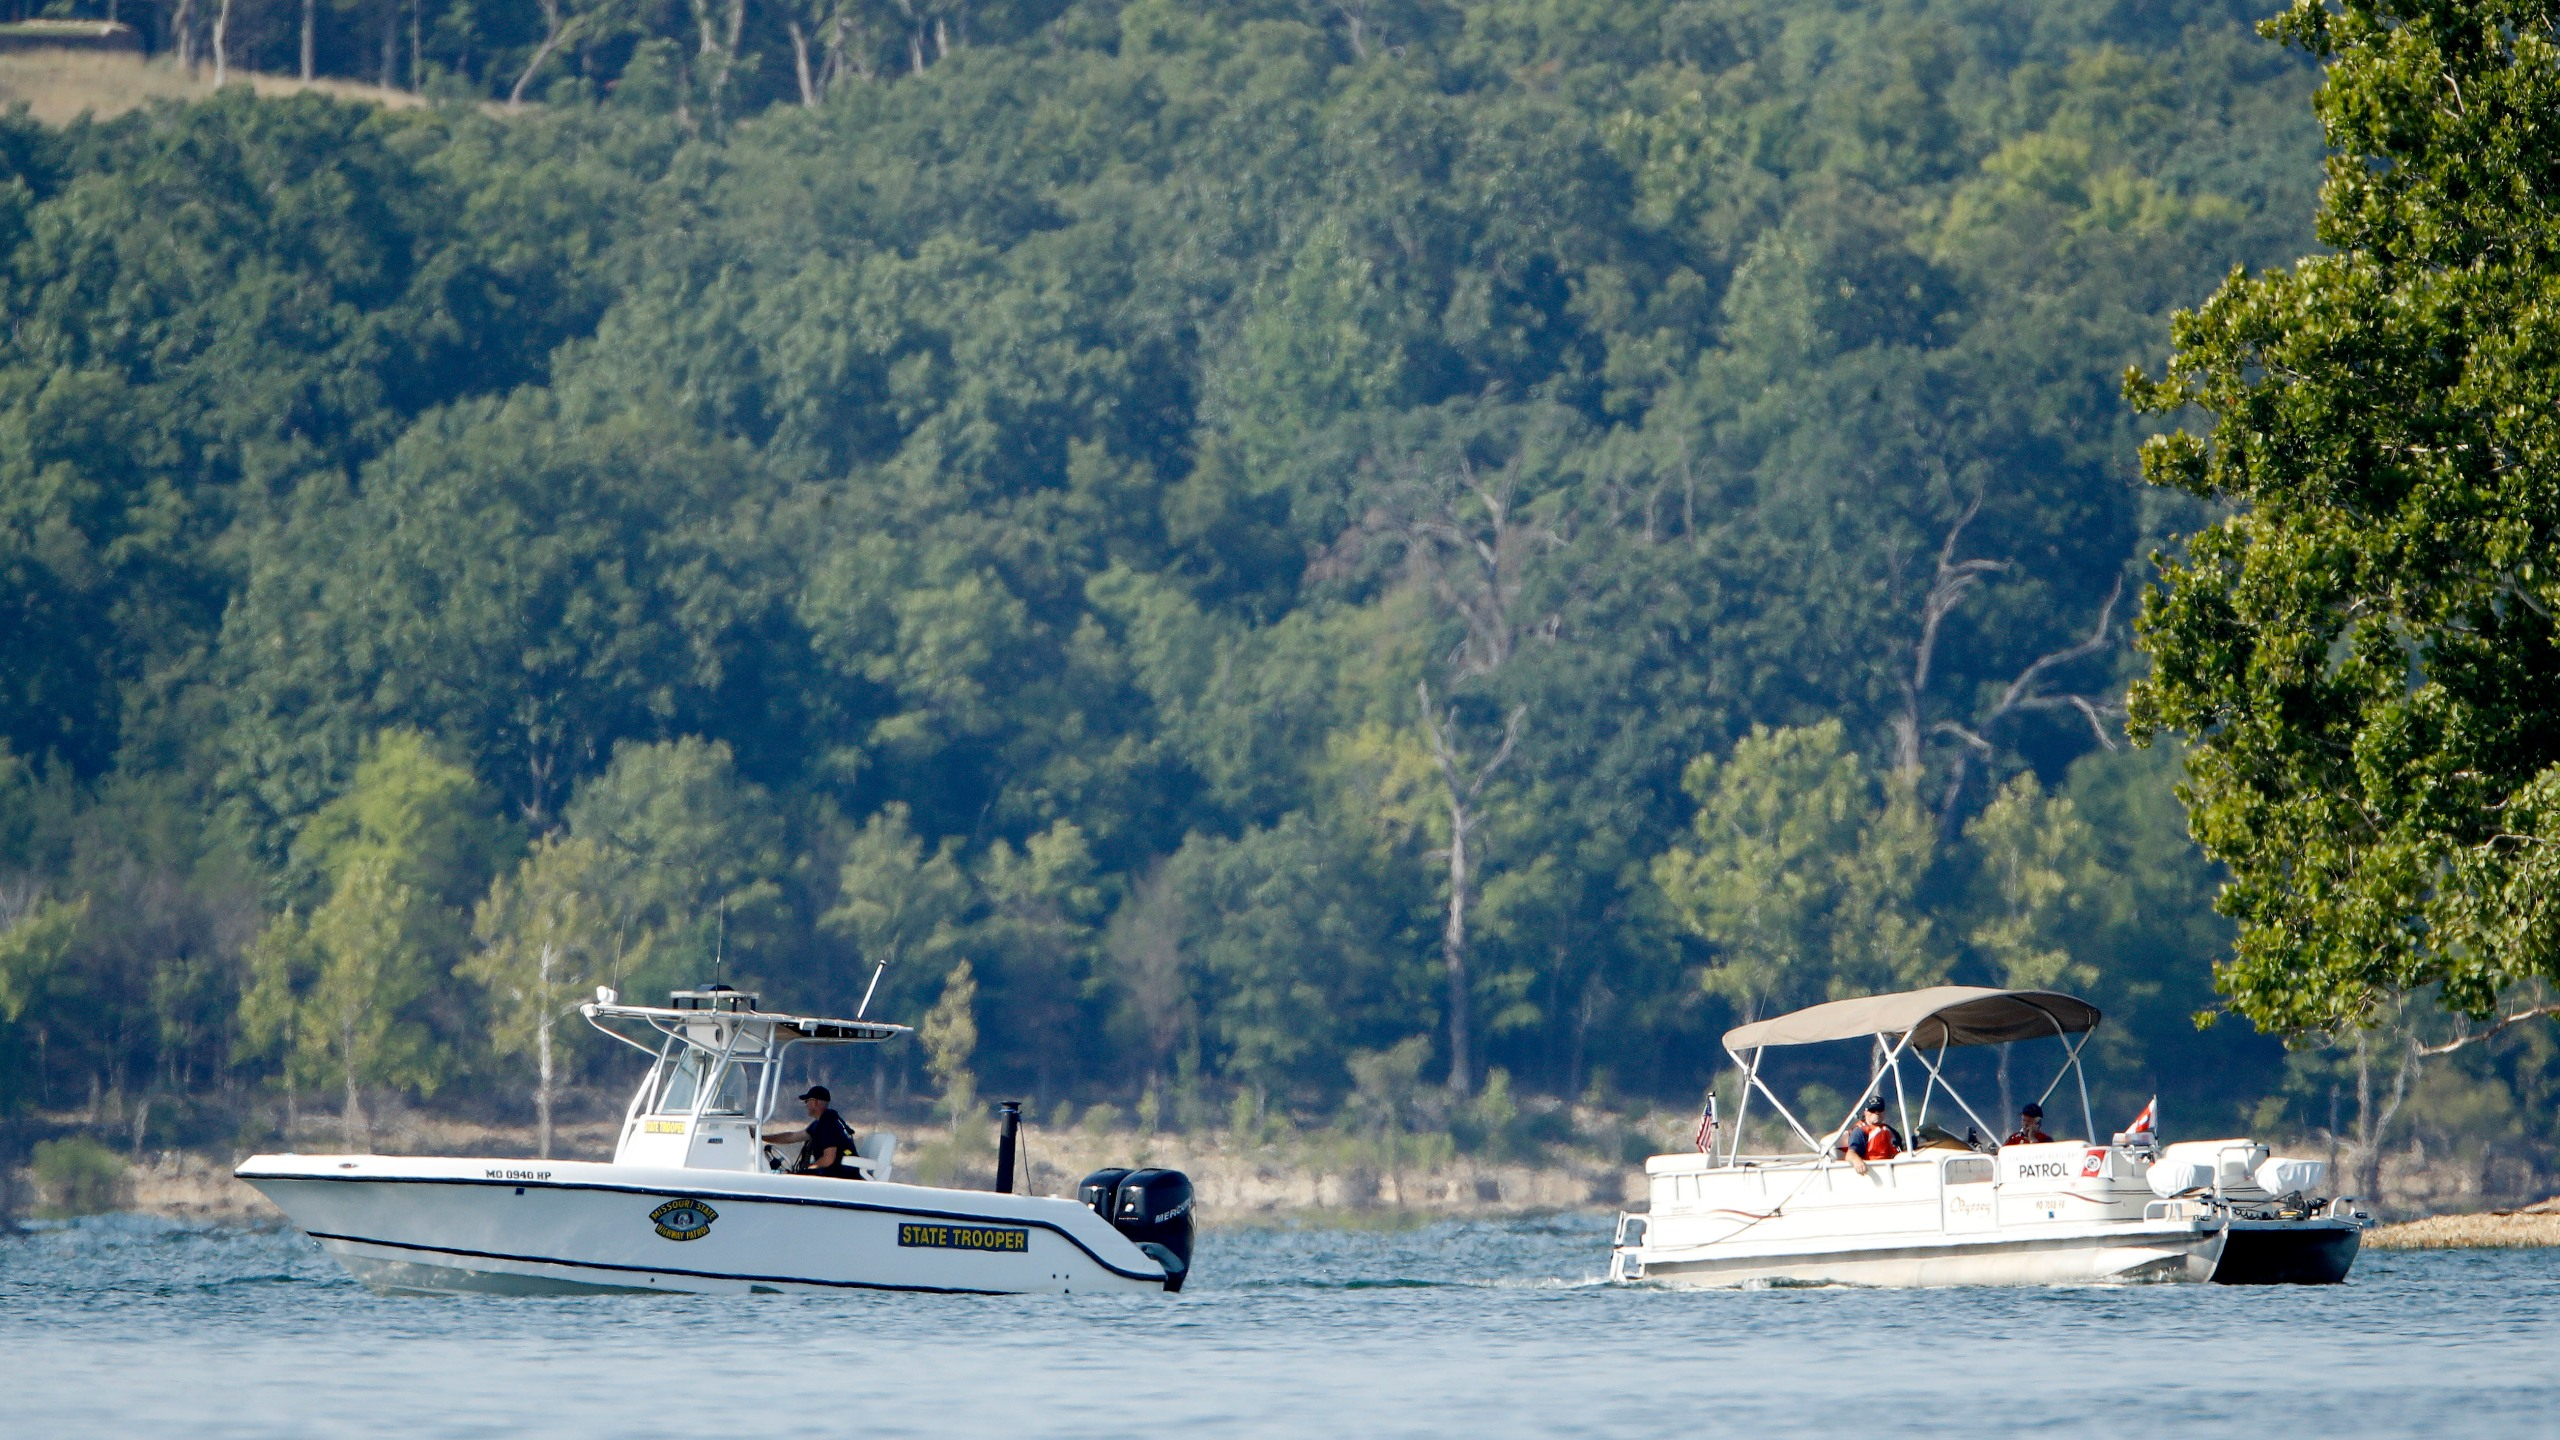 Missouri_Boat_Accident_84431-159532.jpg01300845